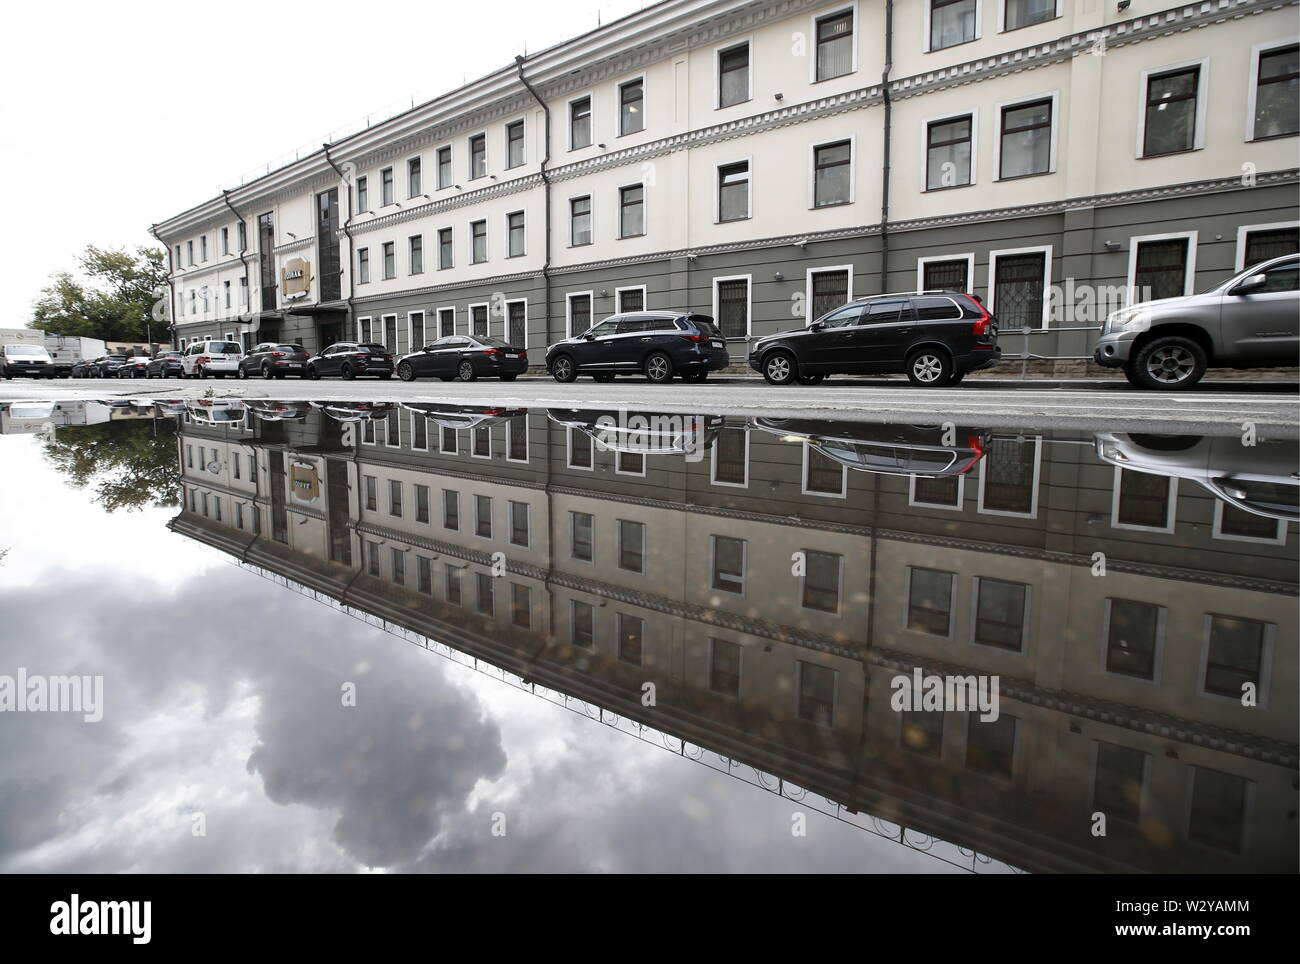 Moscow, Russia. 11th July, 2019. MOSCOW, RUSISA - JULY 11, 2019: A view of the Moscow Printing Factory producing banknotes and owned by Goznak, the enterprise and its branch both celebrating their centenaries in 2019. Artyom Geodakyan/TASS Credit: ITAR-TASS News Agency/Alamy Live News - Stock Image